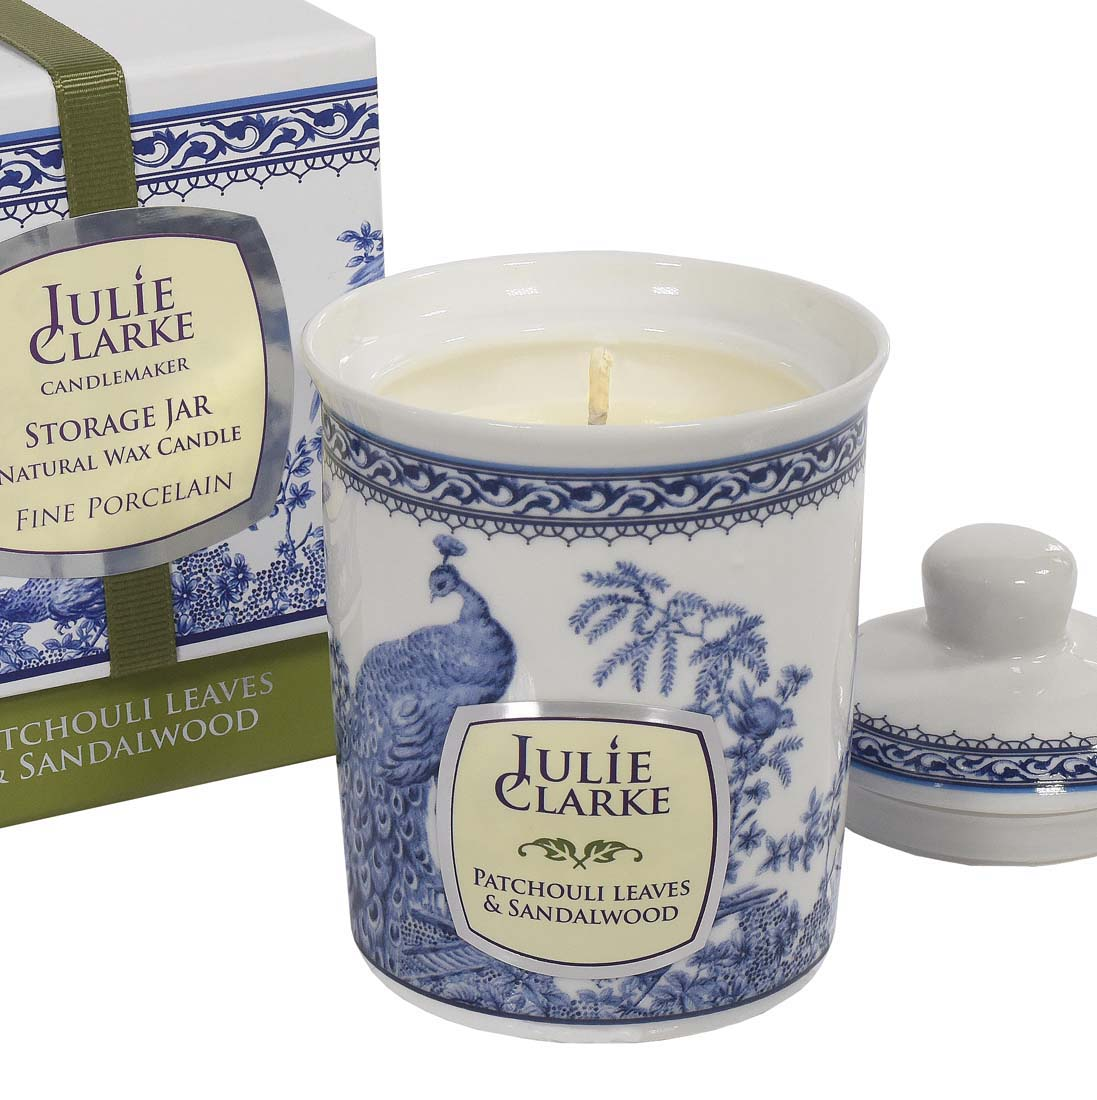 Patchouli Leaves & Sandalwood Jar Candle by Julie Clarke